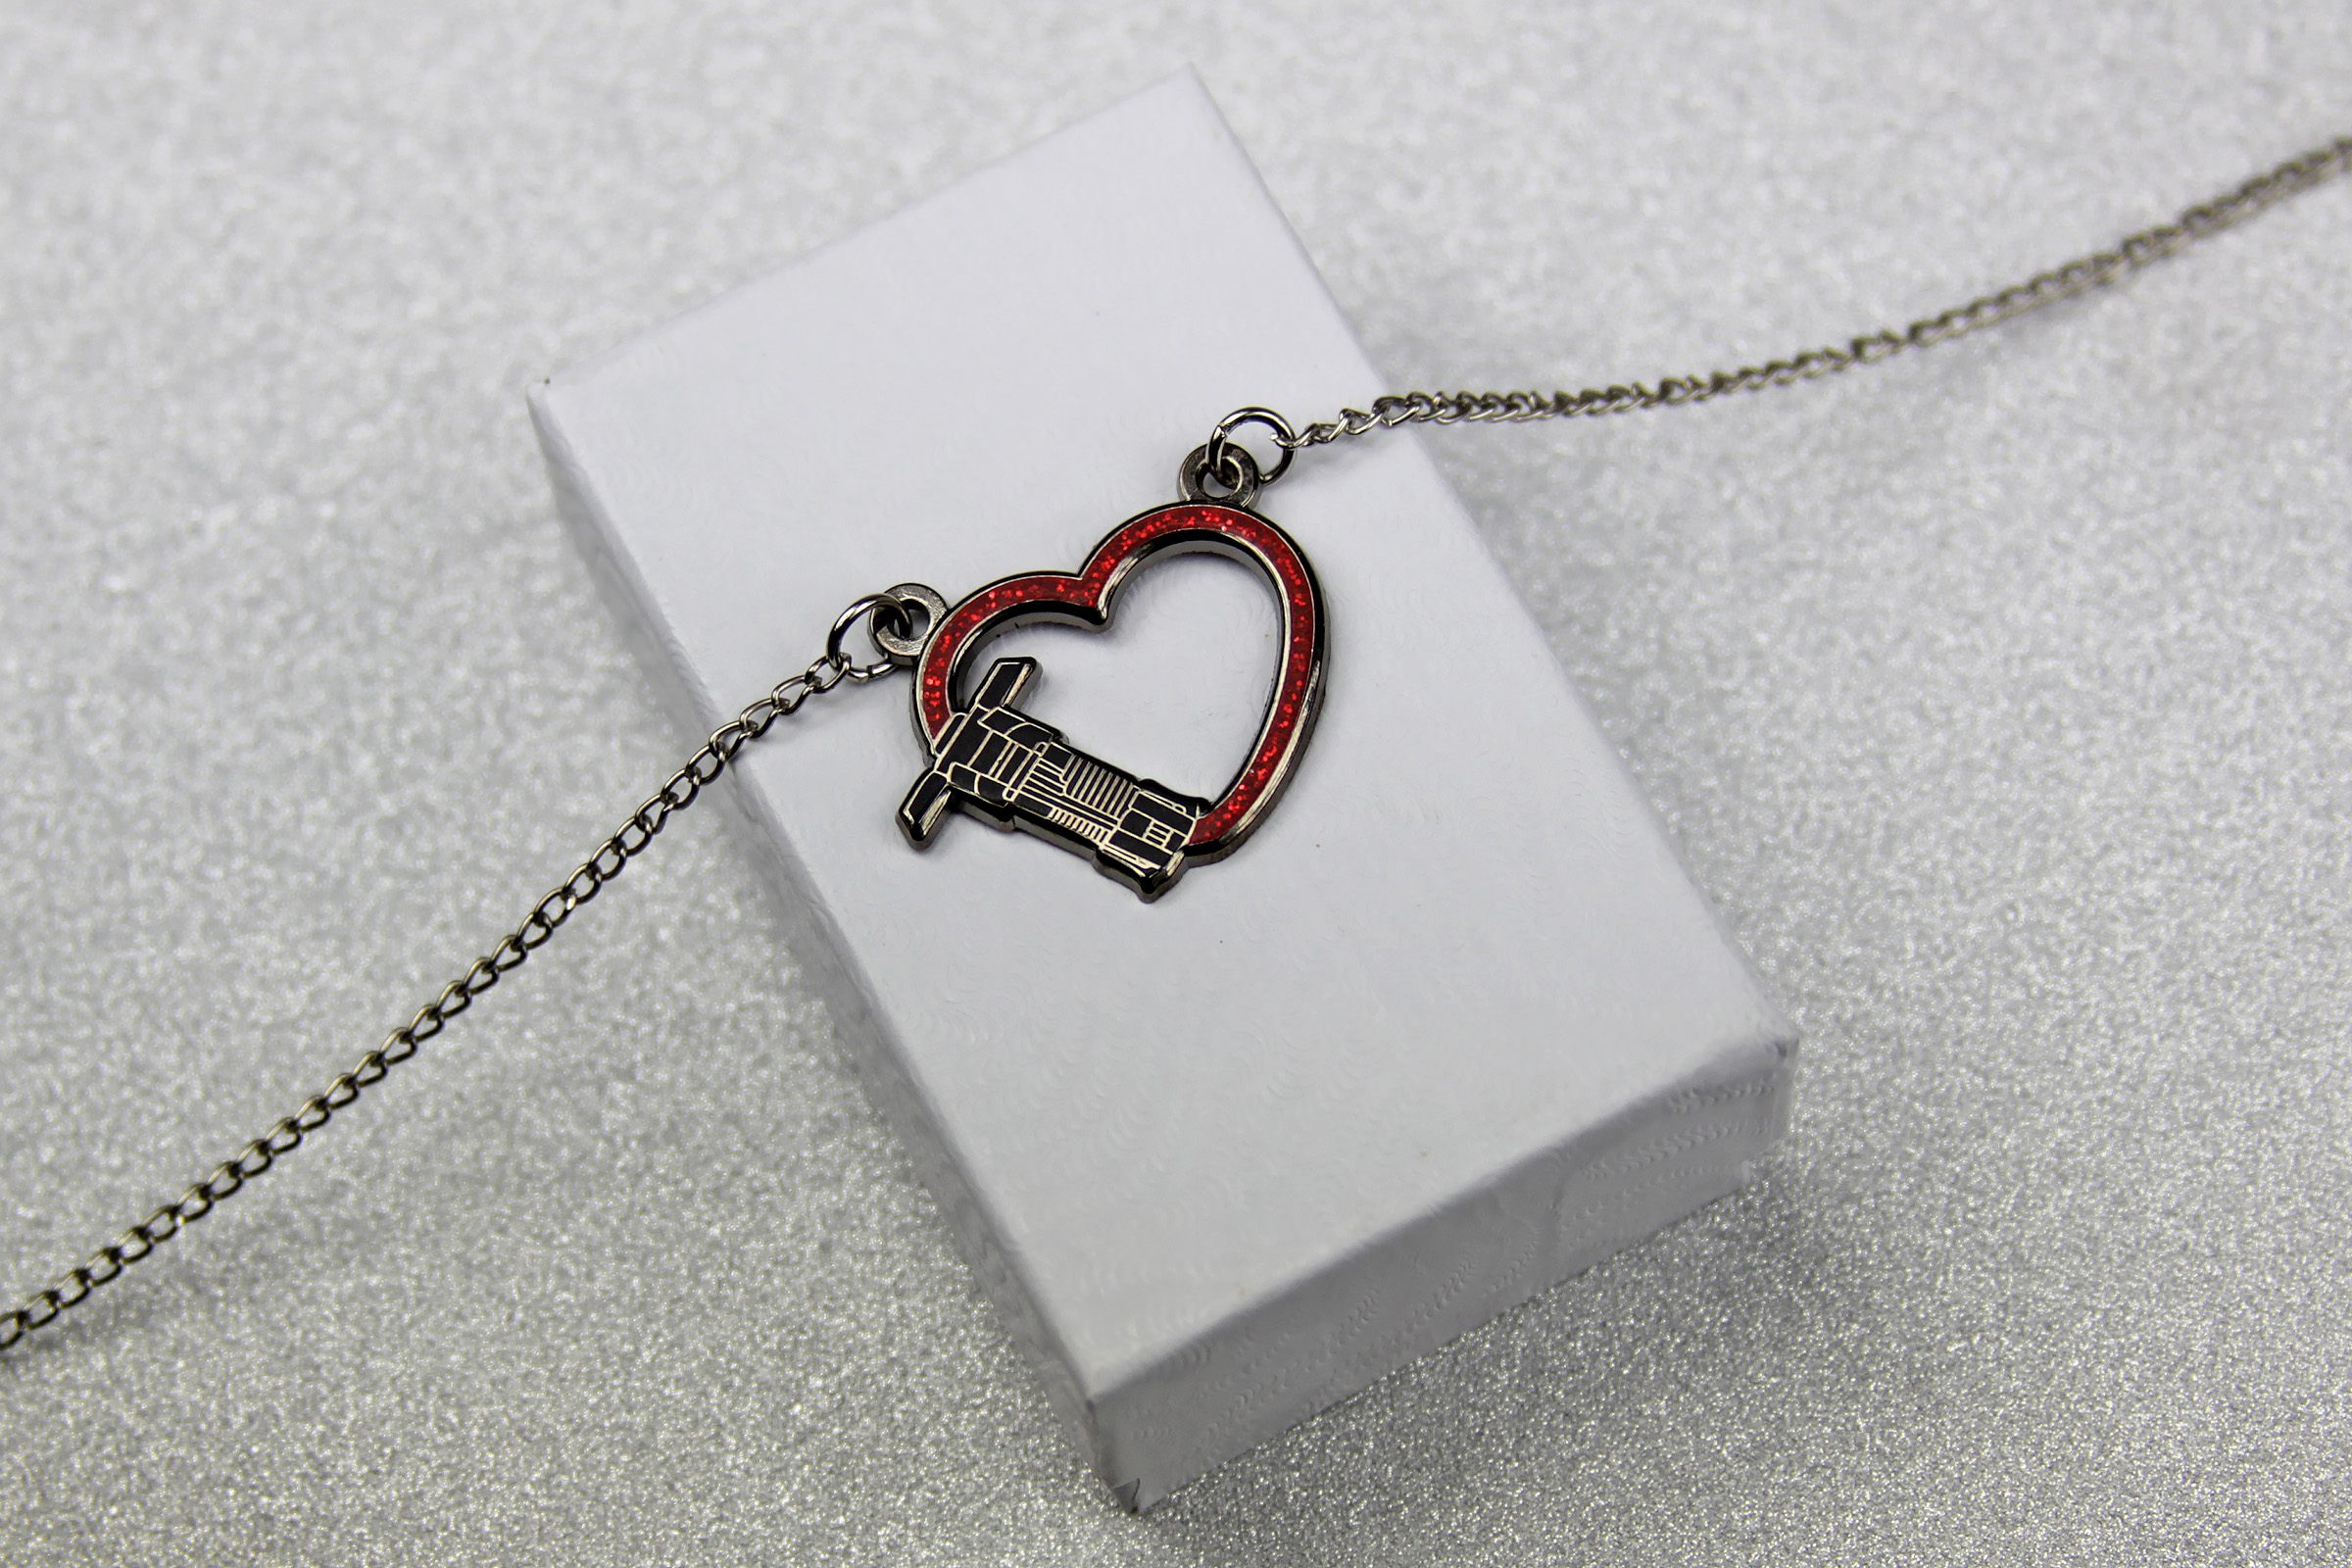 Star Wars Kylo Ren Lightsaber Heart Necklace by Lantern Pins